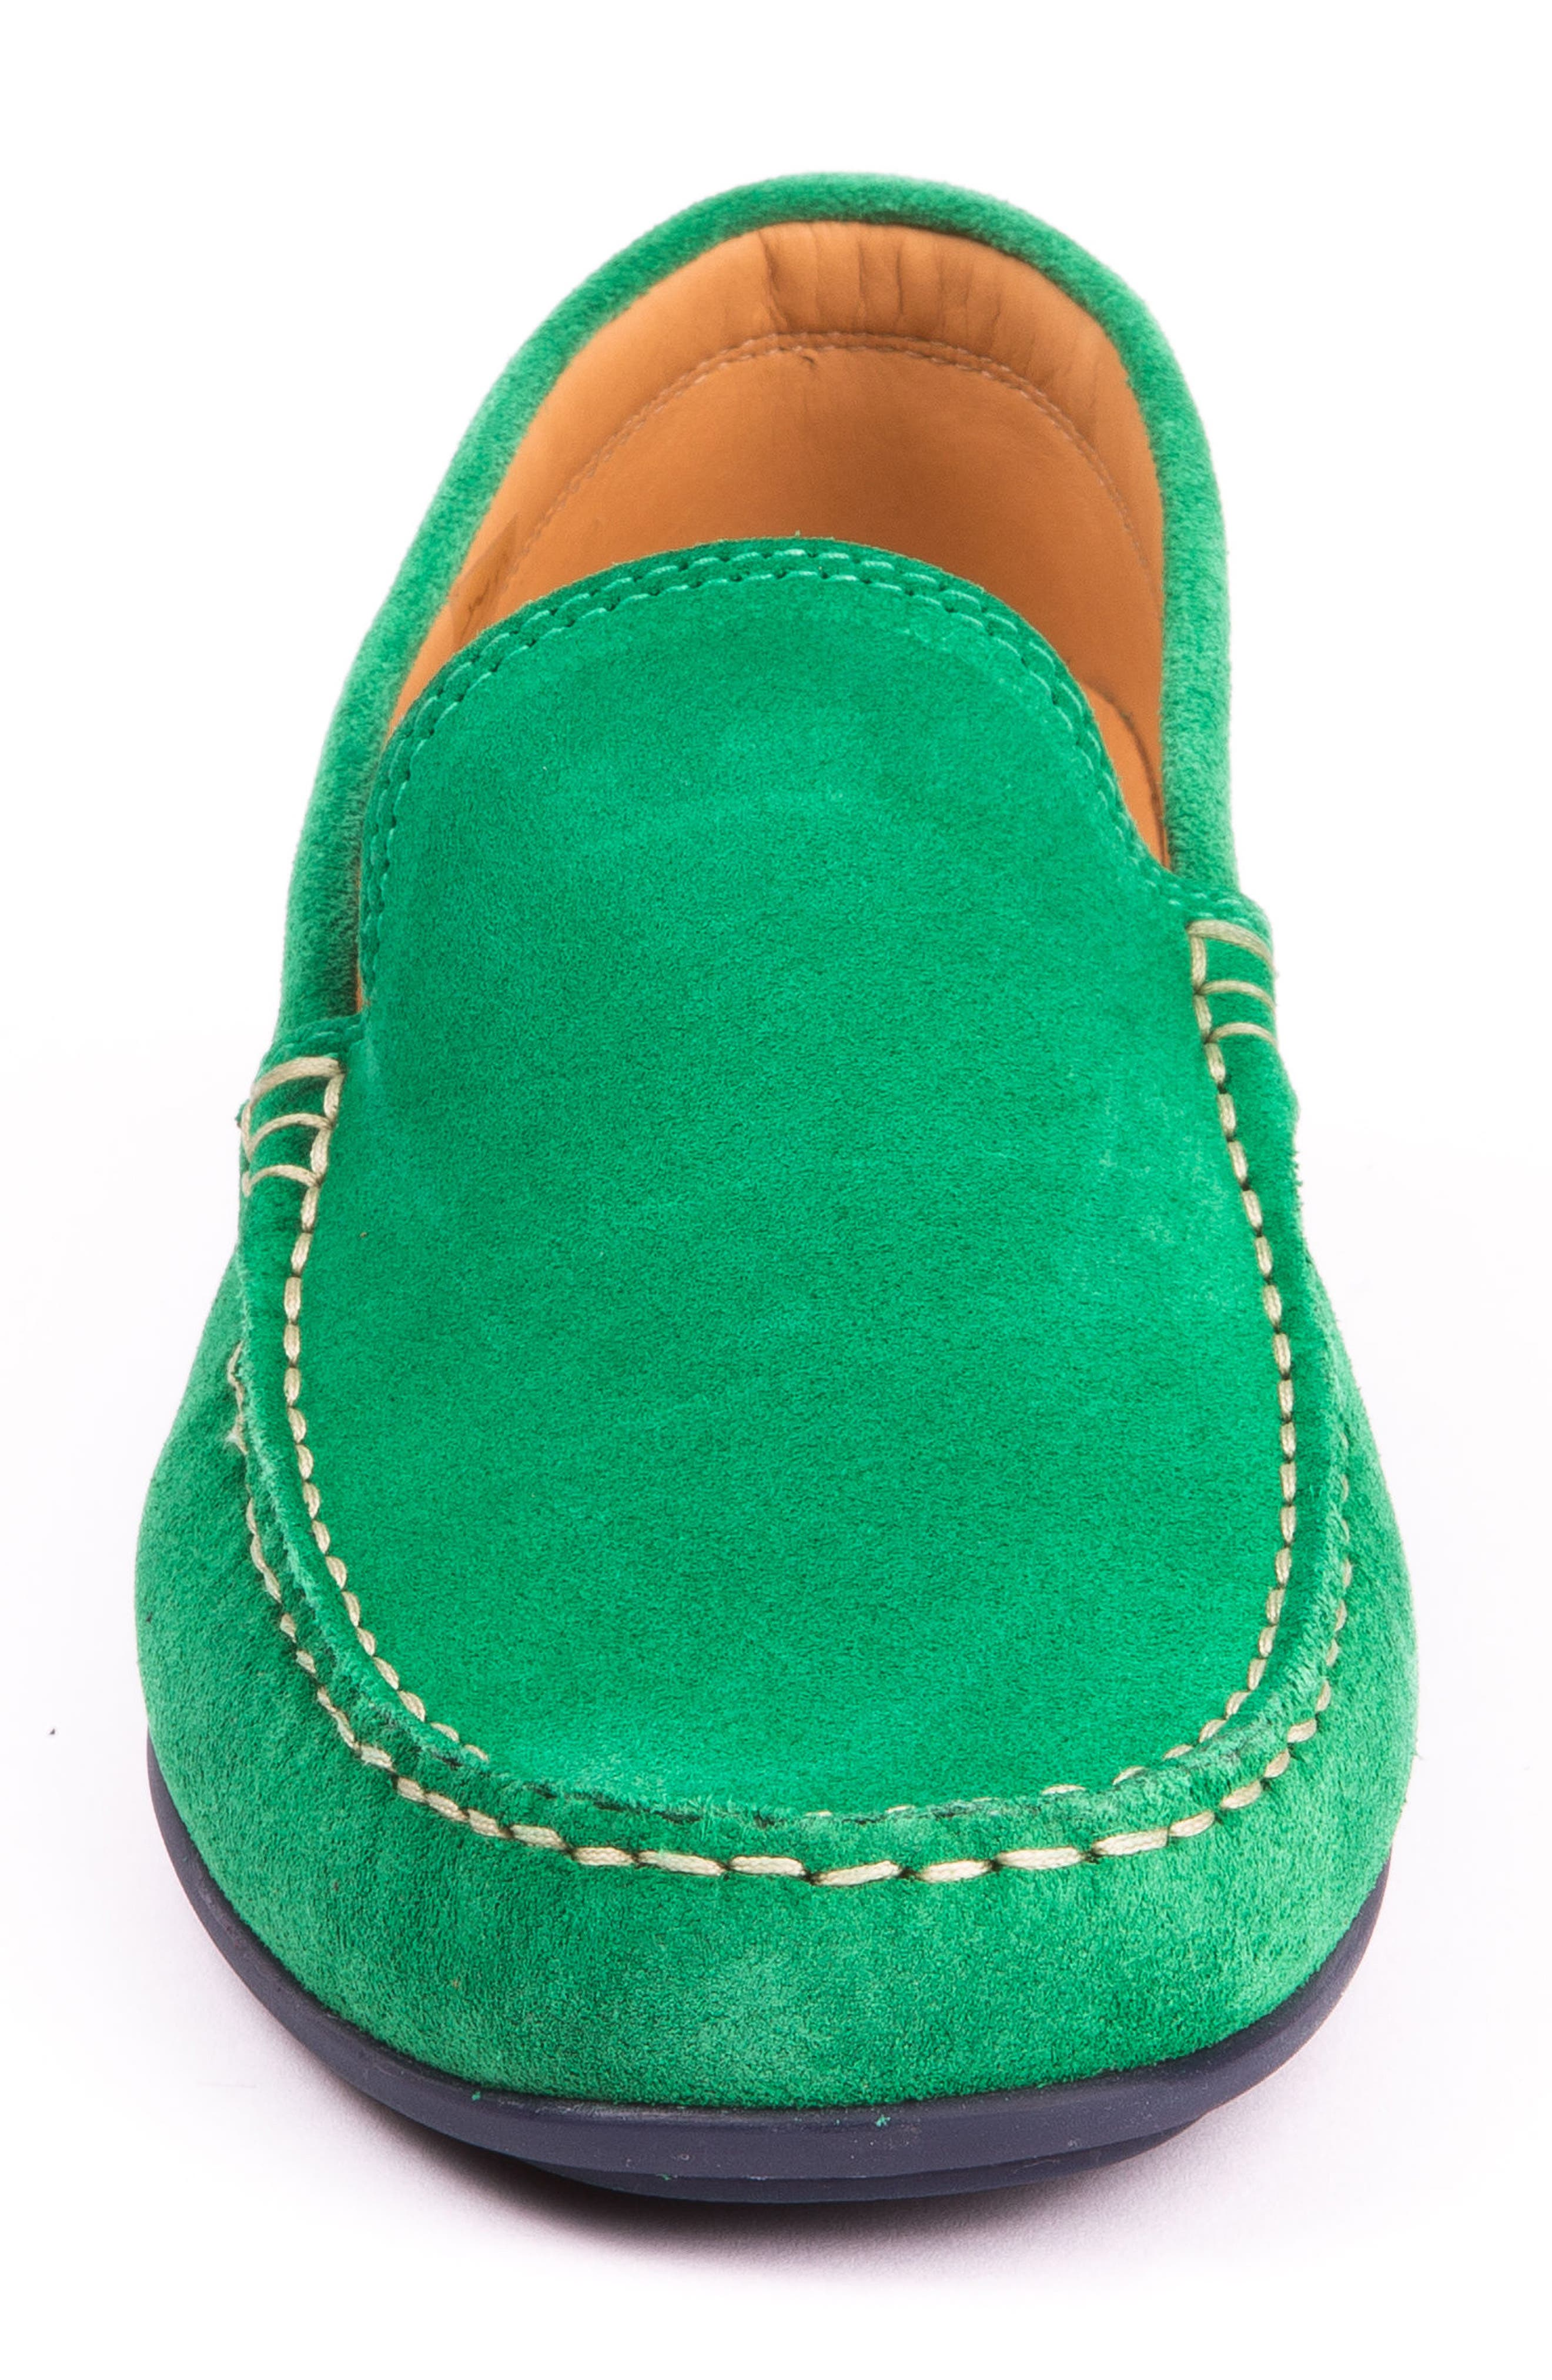 Fairways Driving Shoe,                             Alternate thumbnail 4, color,                             Green Suede